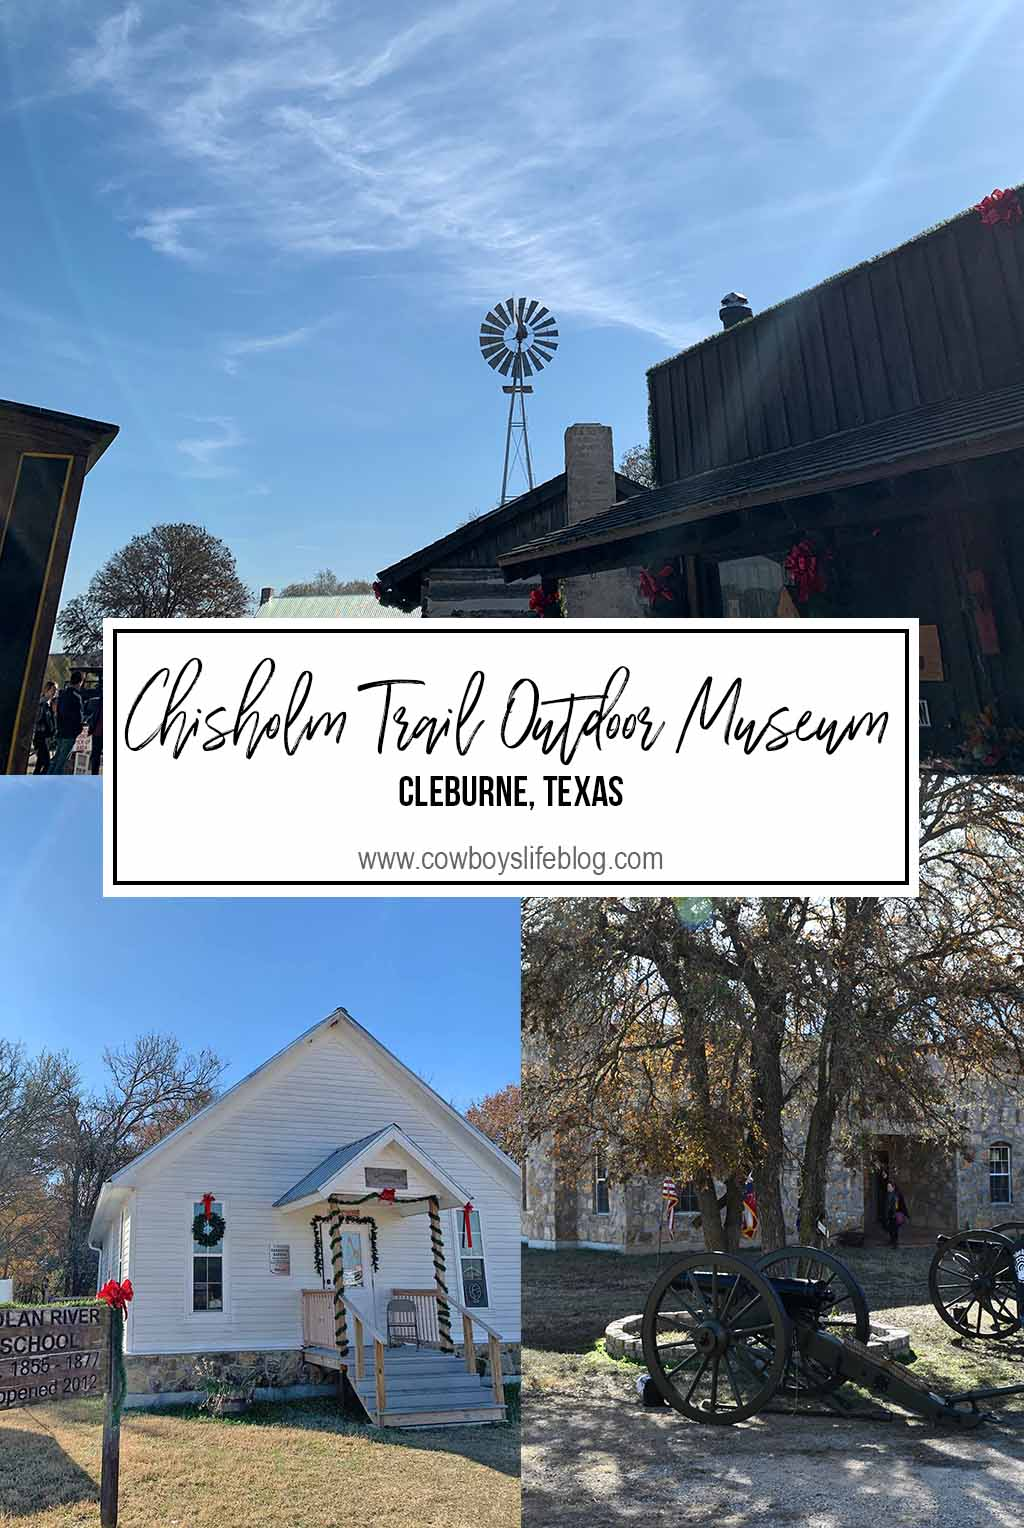 Chisholm Trail Outdoor Museum cleburne, Texas